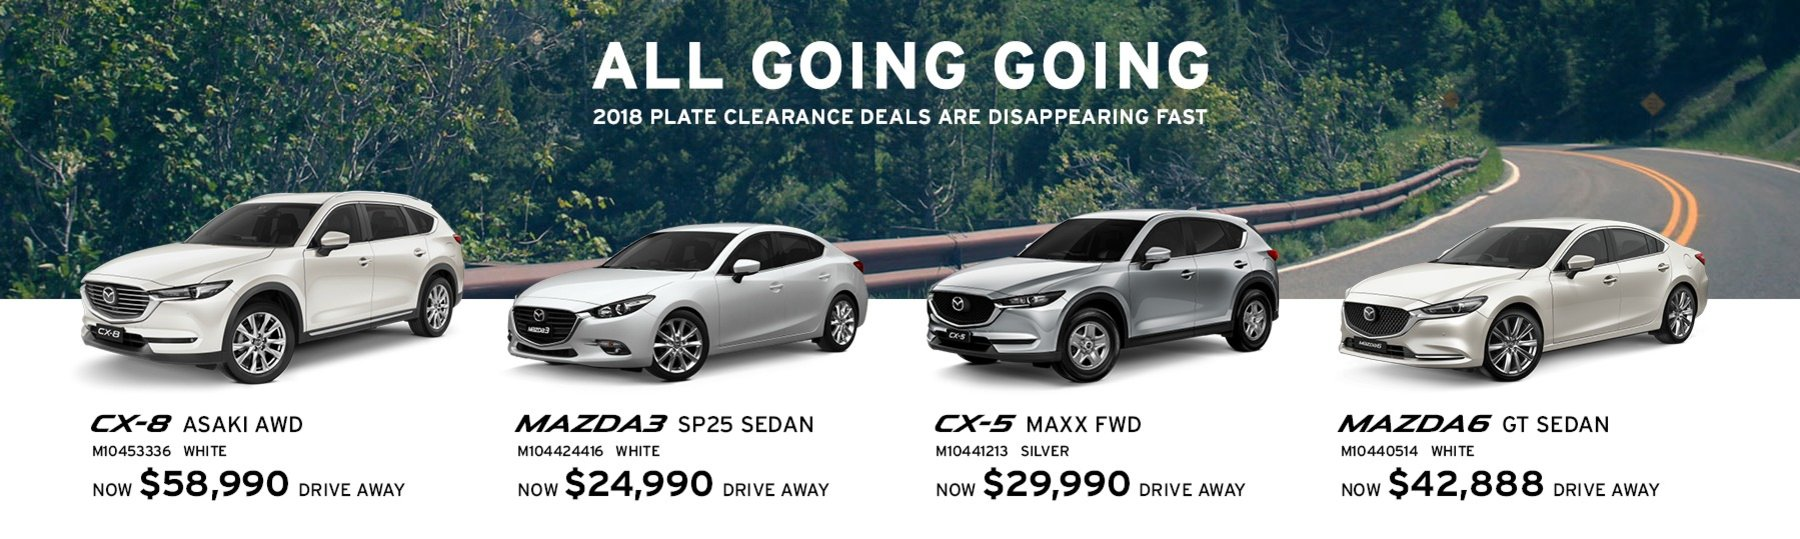 Newcastle Mazda 2018 Plate Clearance